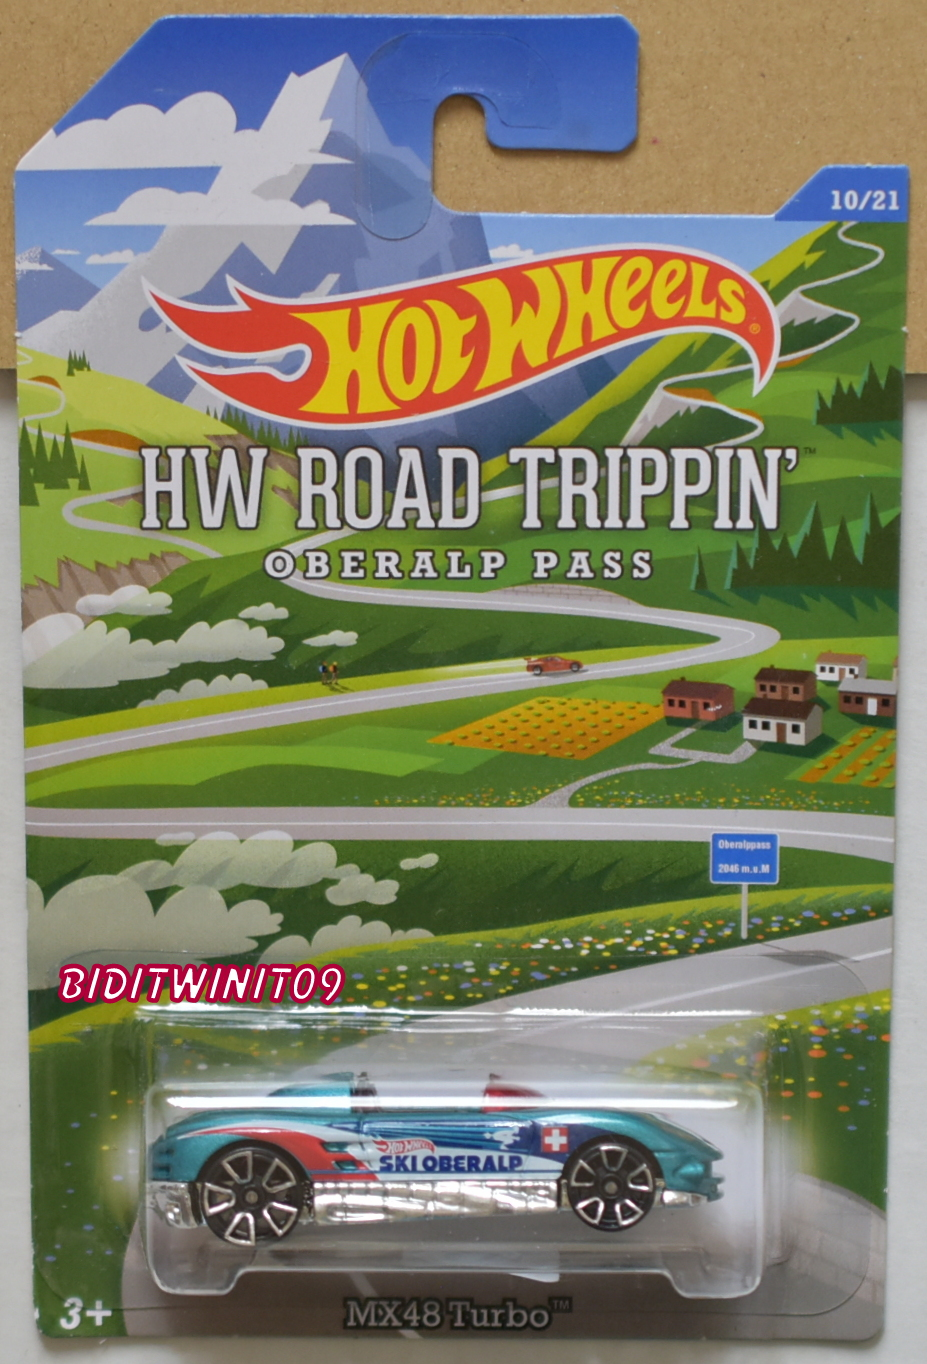 HOT WHEELS HW ROAD TRIPPIN OBERALP PASS MX48 TURBO #10/21 E+